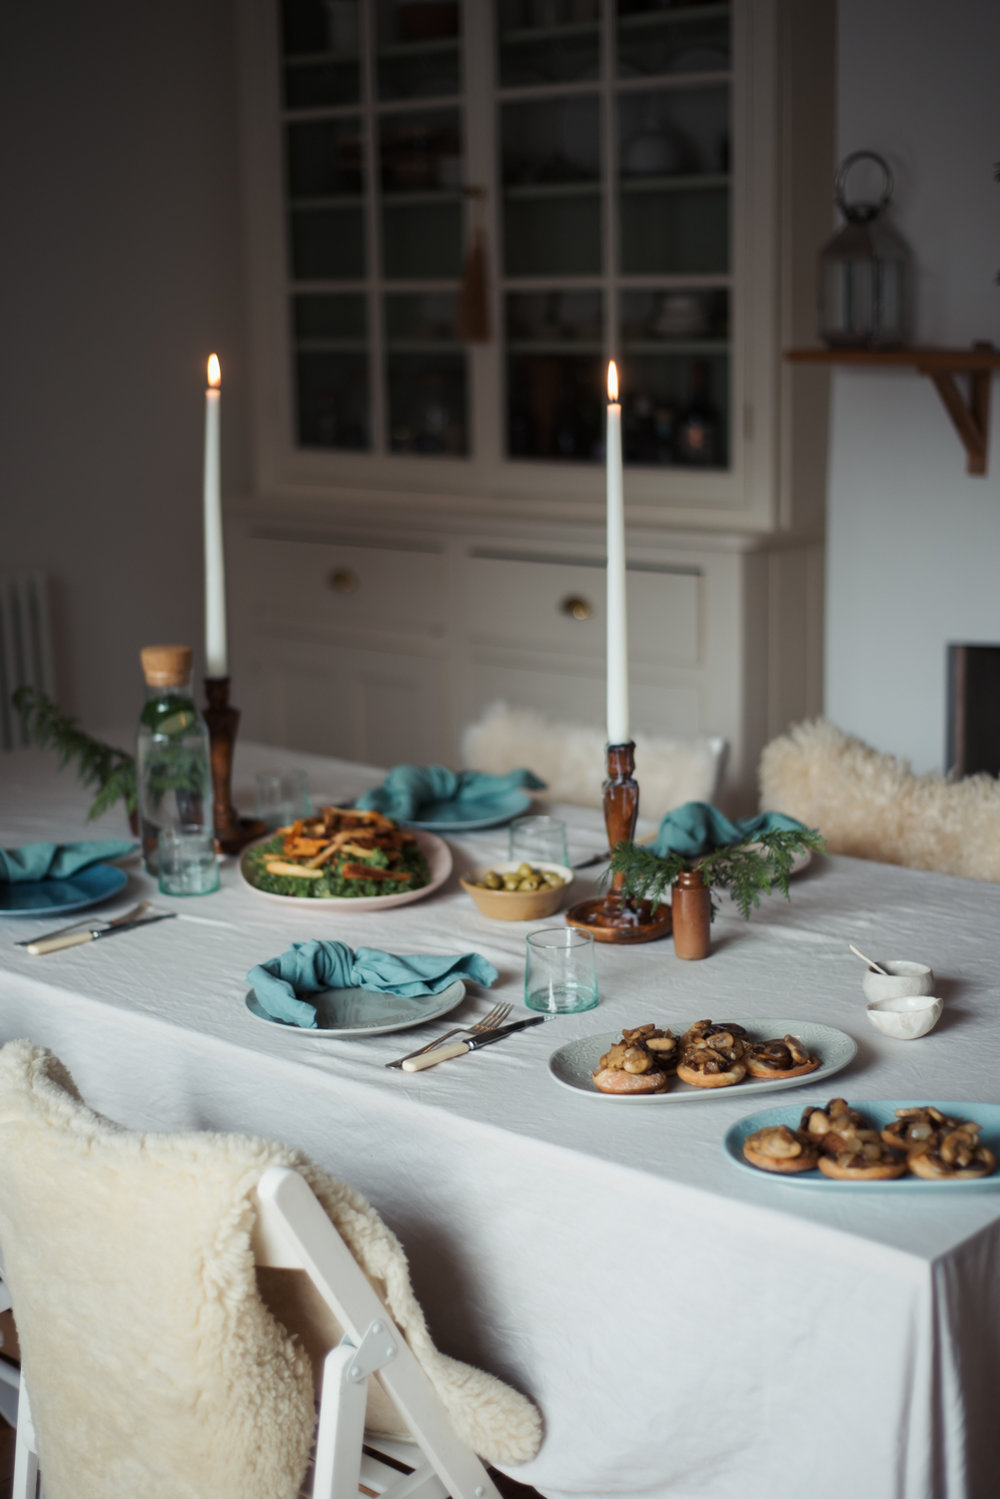 Food with Friends, a winter tonic. With Denby | Hannah Bullivant